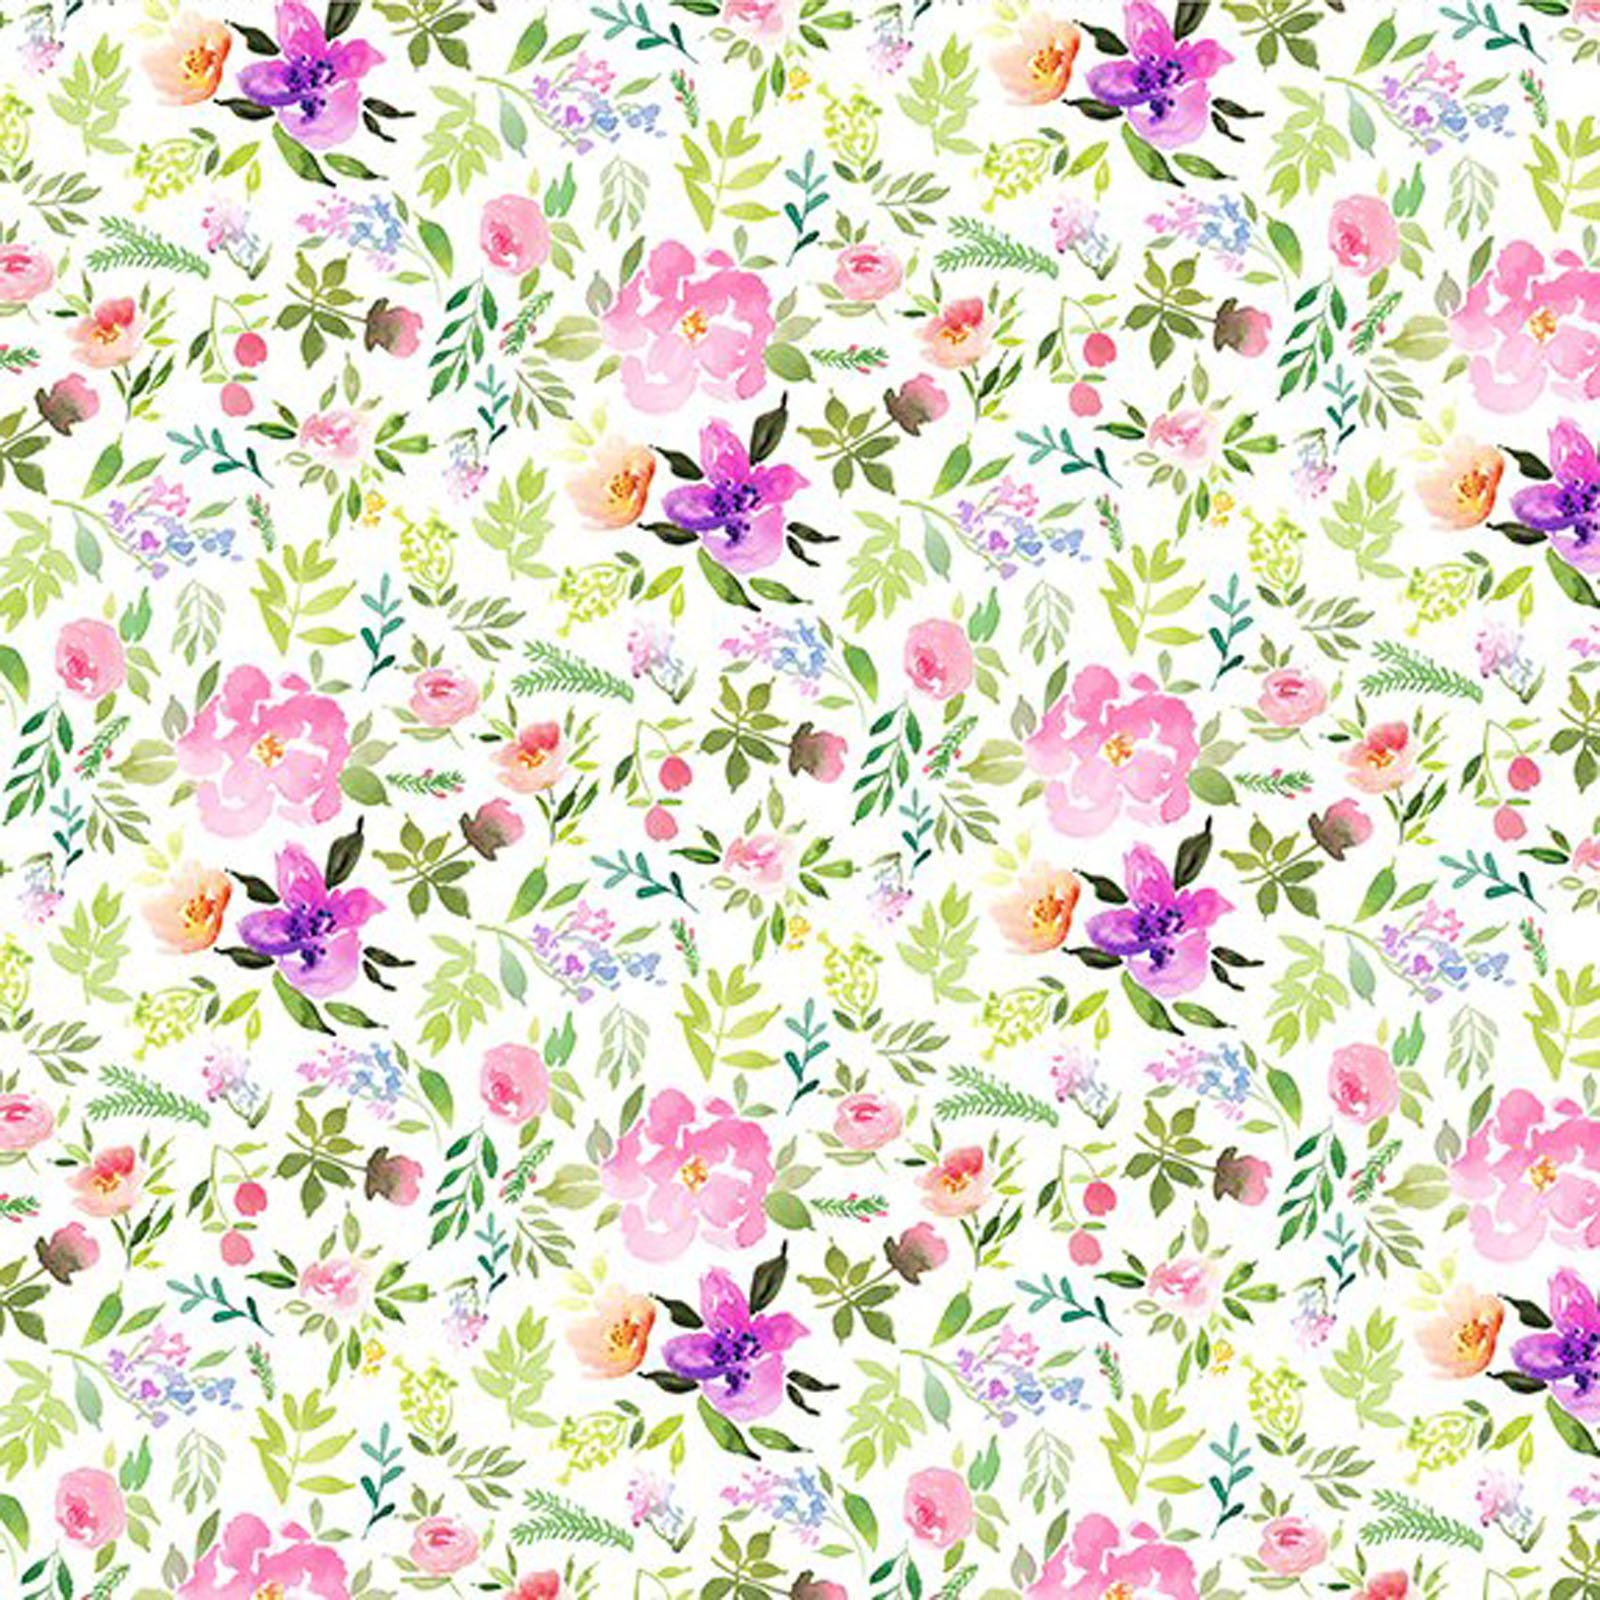 INTH-11GSH 2 - WATERCOLOR BEAUTY BY IN THE BEGINNING SPRIG PINK - ARRIVING IN MAY 2021